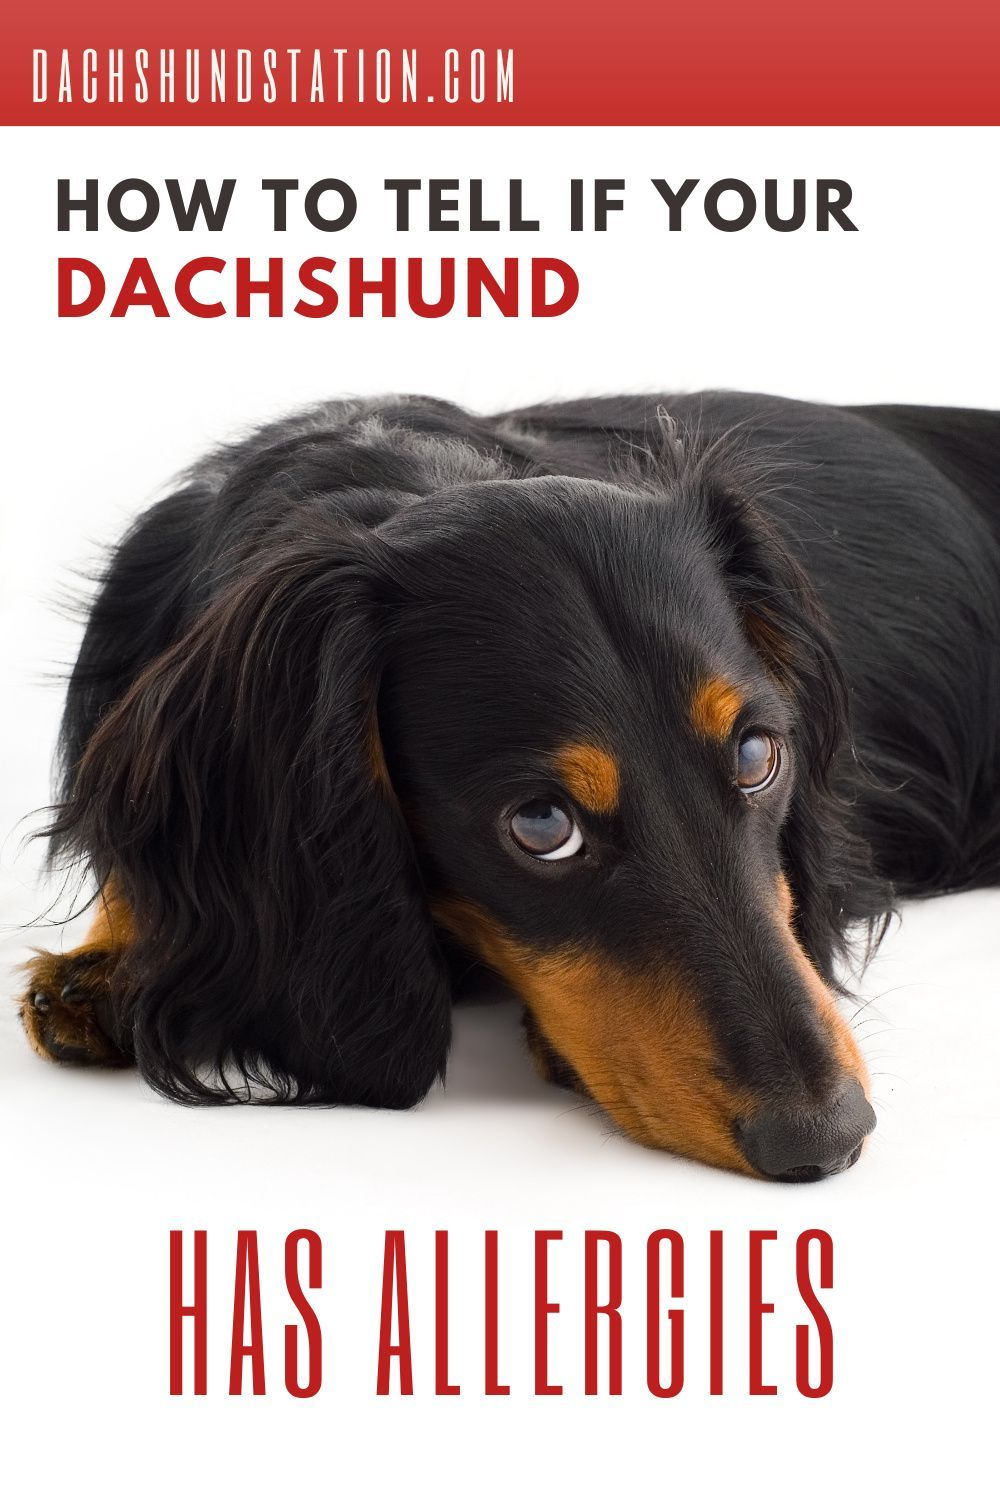 Itchy Dachshund Allergies 3 Solutions That Can Help Dachshund Station In 2020 Big Dog Little Dog Dog Allergies Wild Animals Pictures